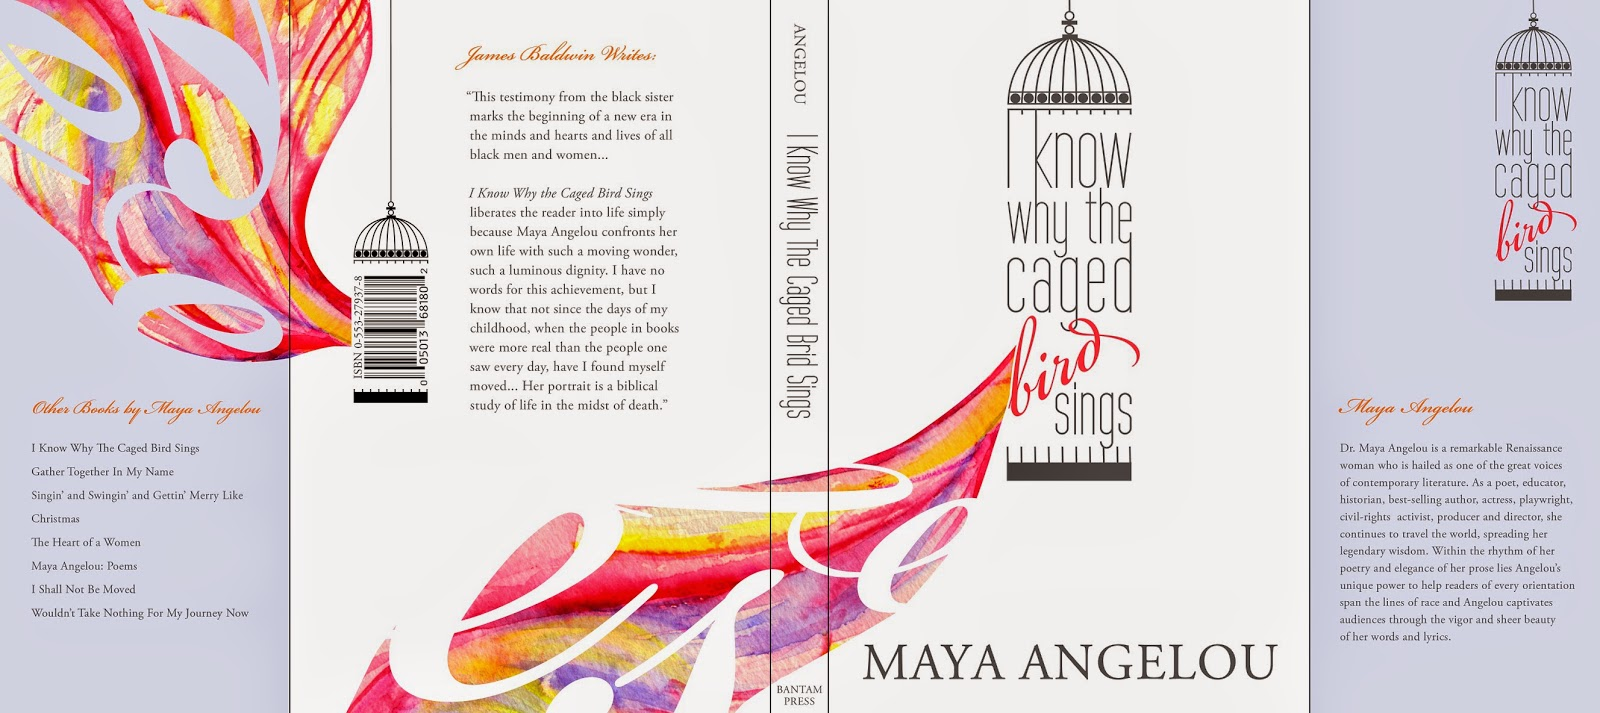 Talk:I Know Why the Caged Bird Sings/Archive 1